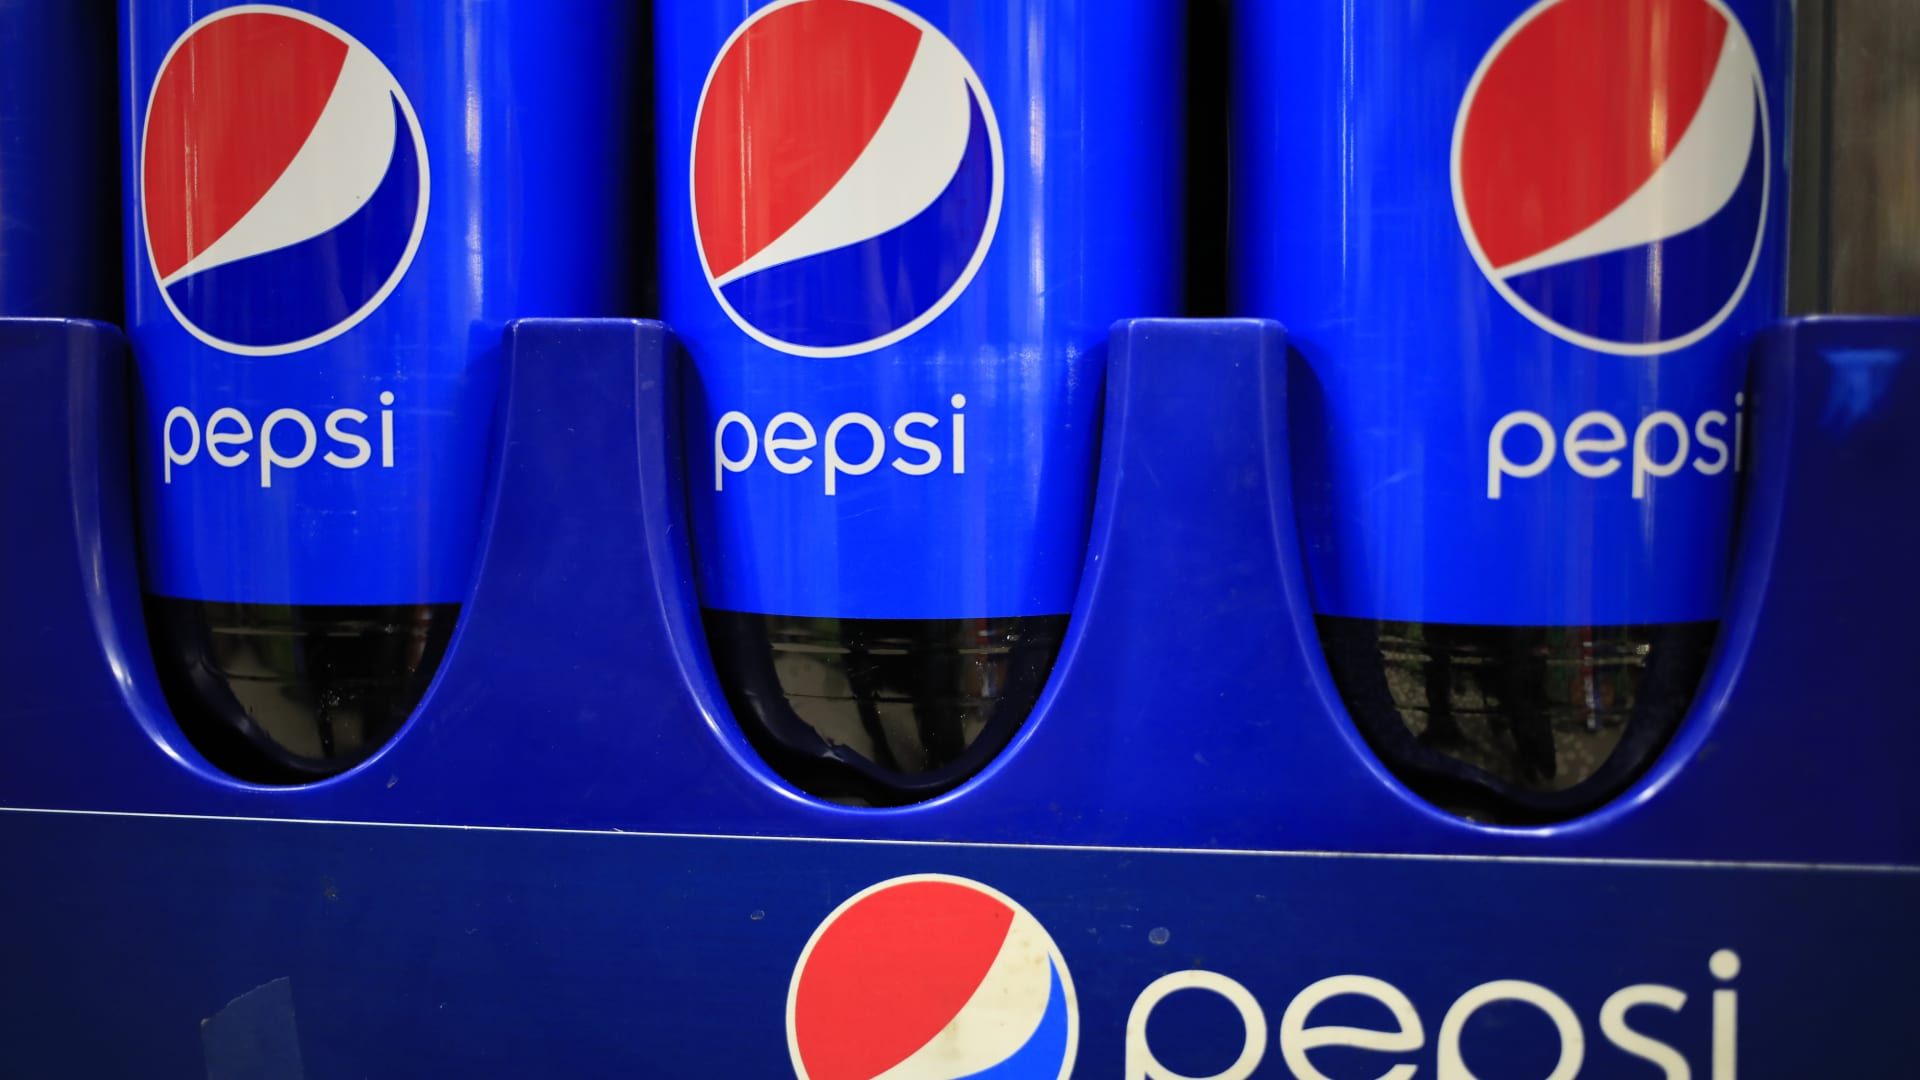 Bottles of PepsiCo Inc. brand Pepsi soda for sale at a grocery store in Bagdad, Kentucky, U.S., on Friday, April 9, 2021.